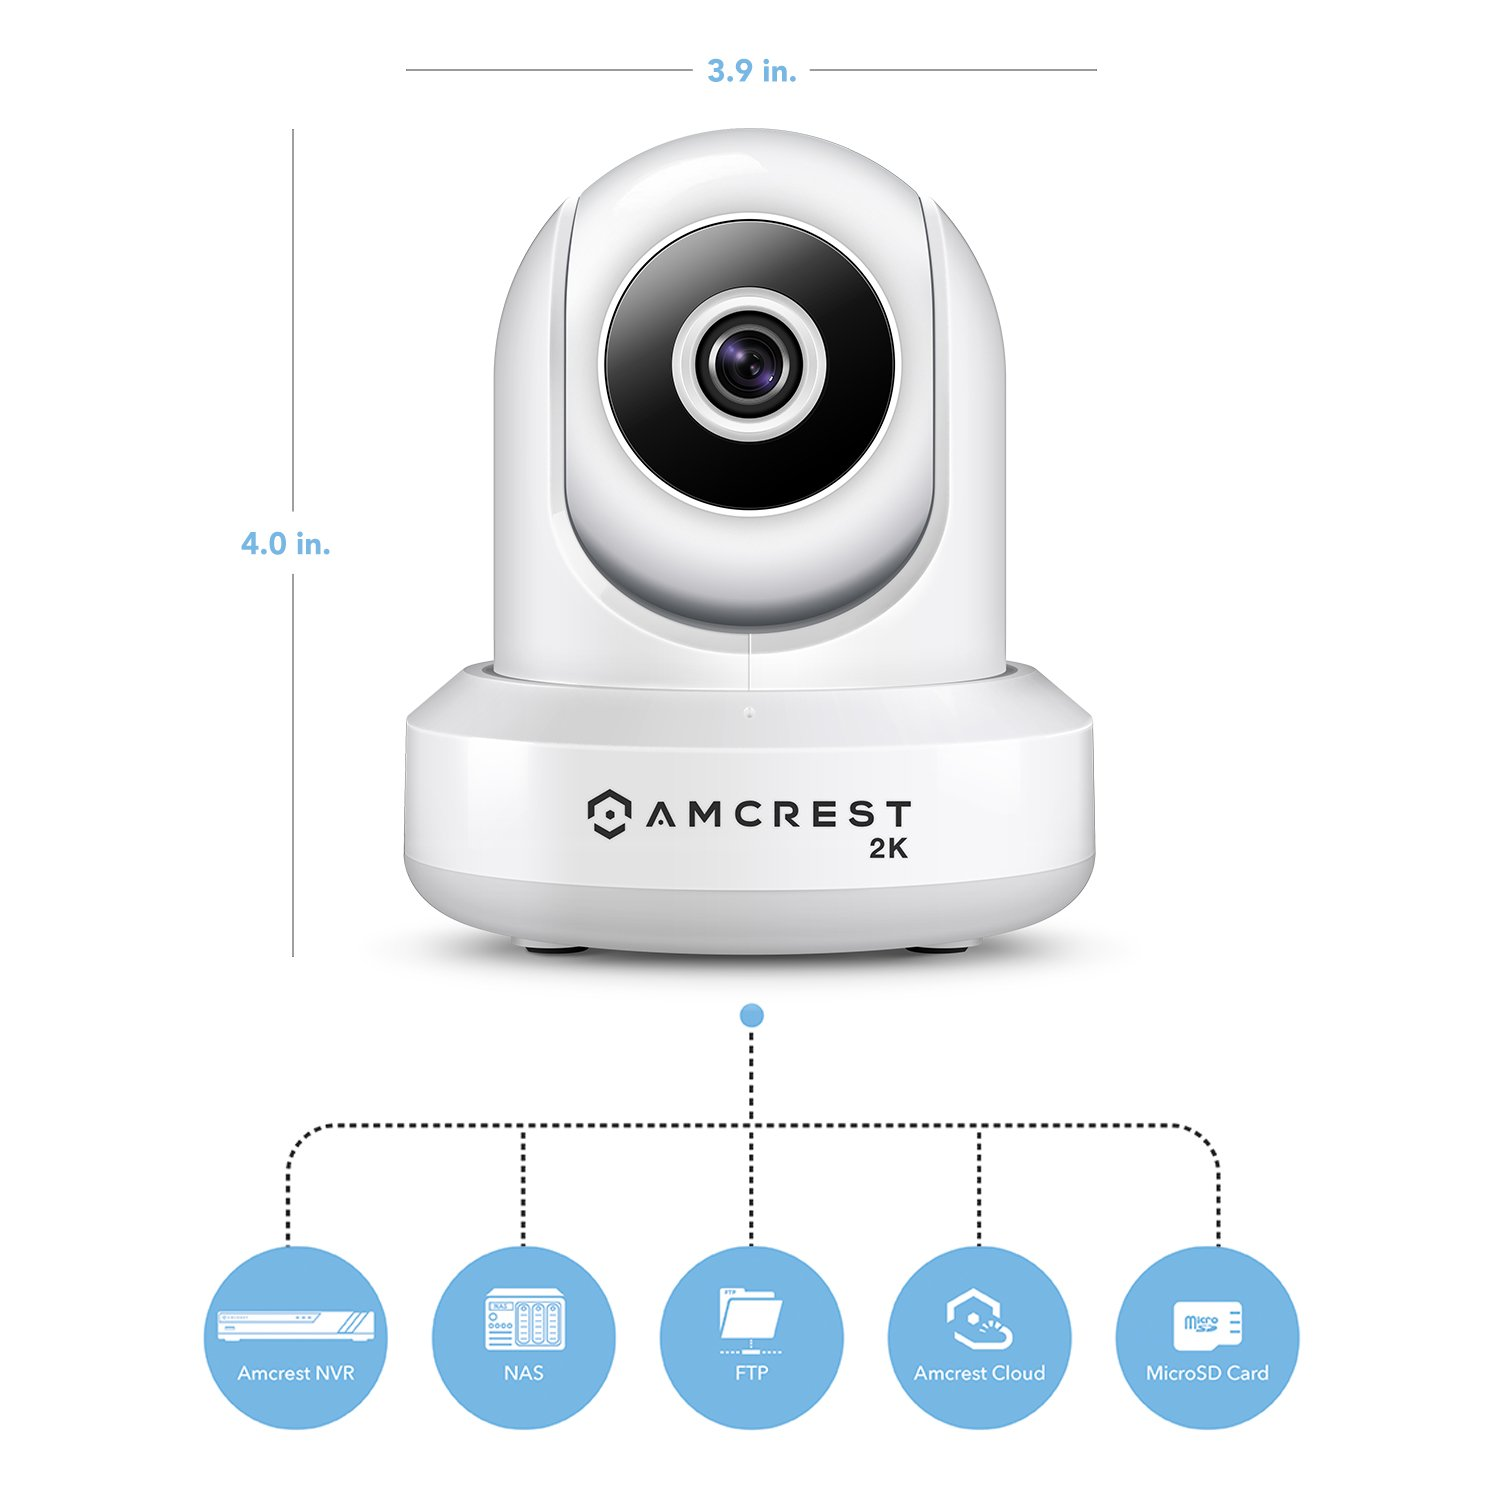 Amcrest UltraHD 2K WiFi Camera 3MP (2304TVL) Dualband 5ghz / 2.4ghz Indoor IP3M-941 (White) by Amcrest